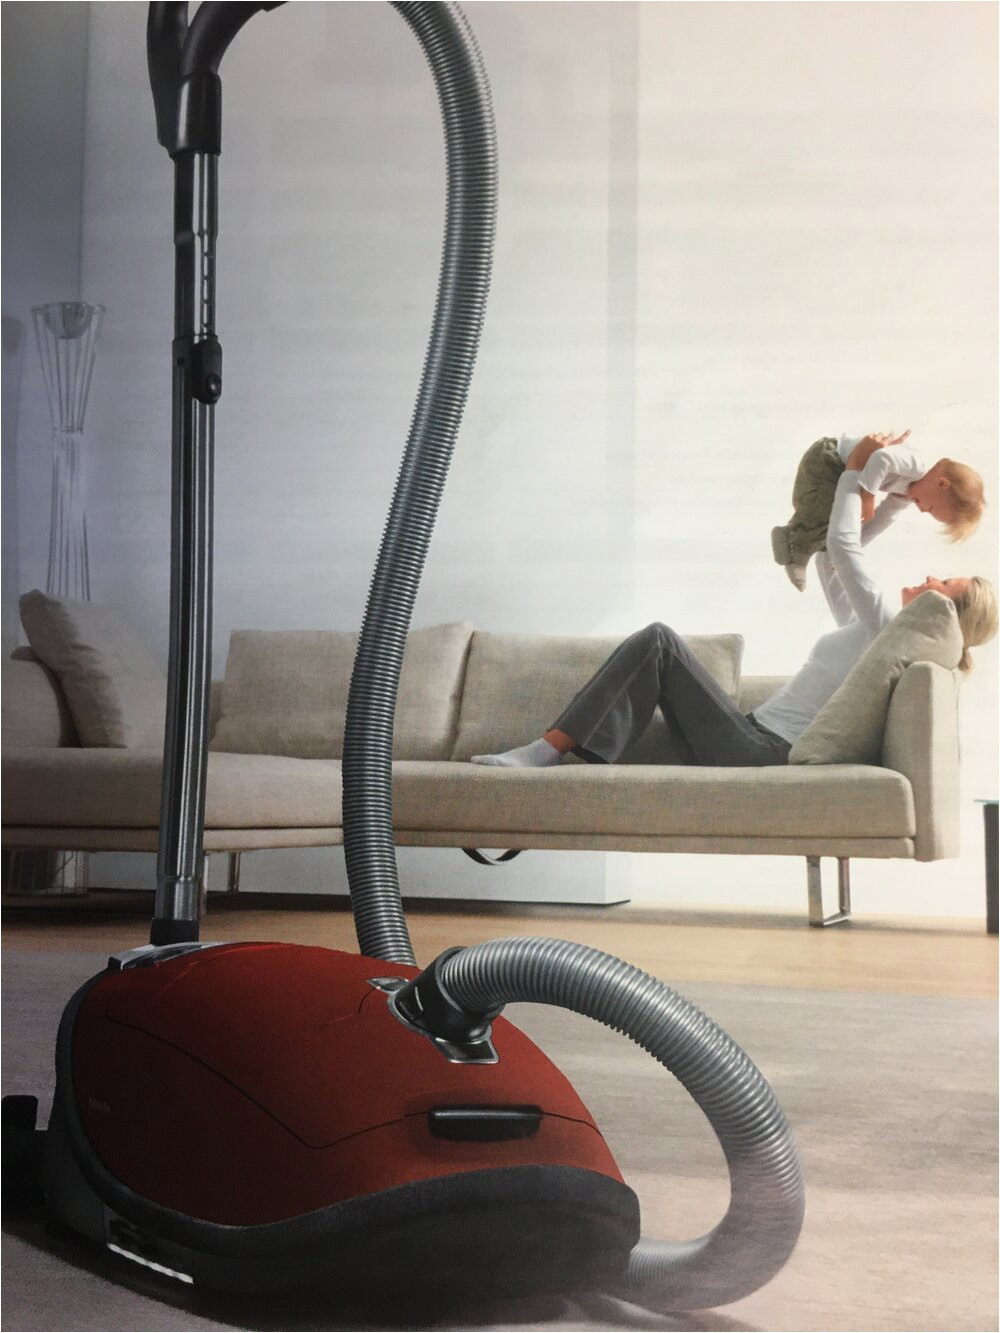 Best Vacuum Cleaner for Wood Floors and area Rugs 5 Things to Know before Buying Your Bare Floor Vacuum